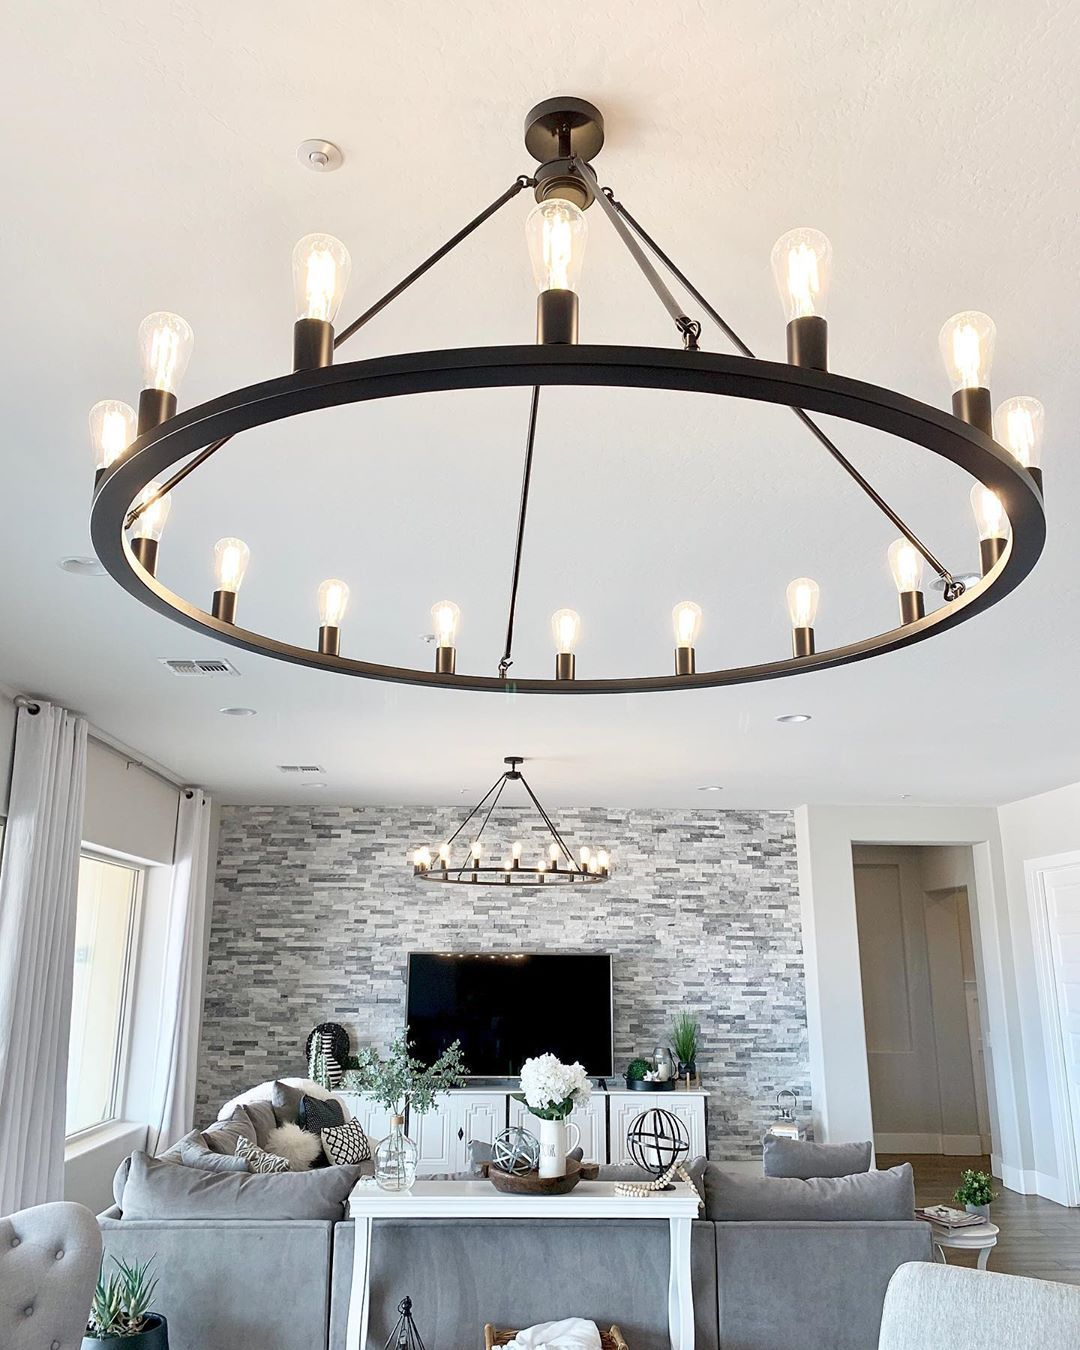 Modern Farmhouse Glam On Instagram Grand Lighting Fixtures Make All The Difference Don T You Think And Two Are Iron Chandeliers Round Chandelier Chandelier